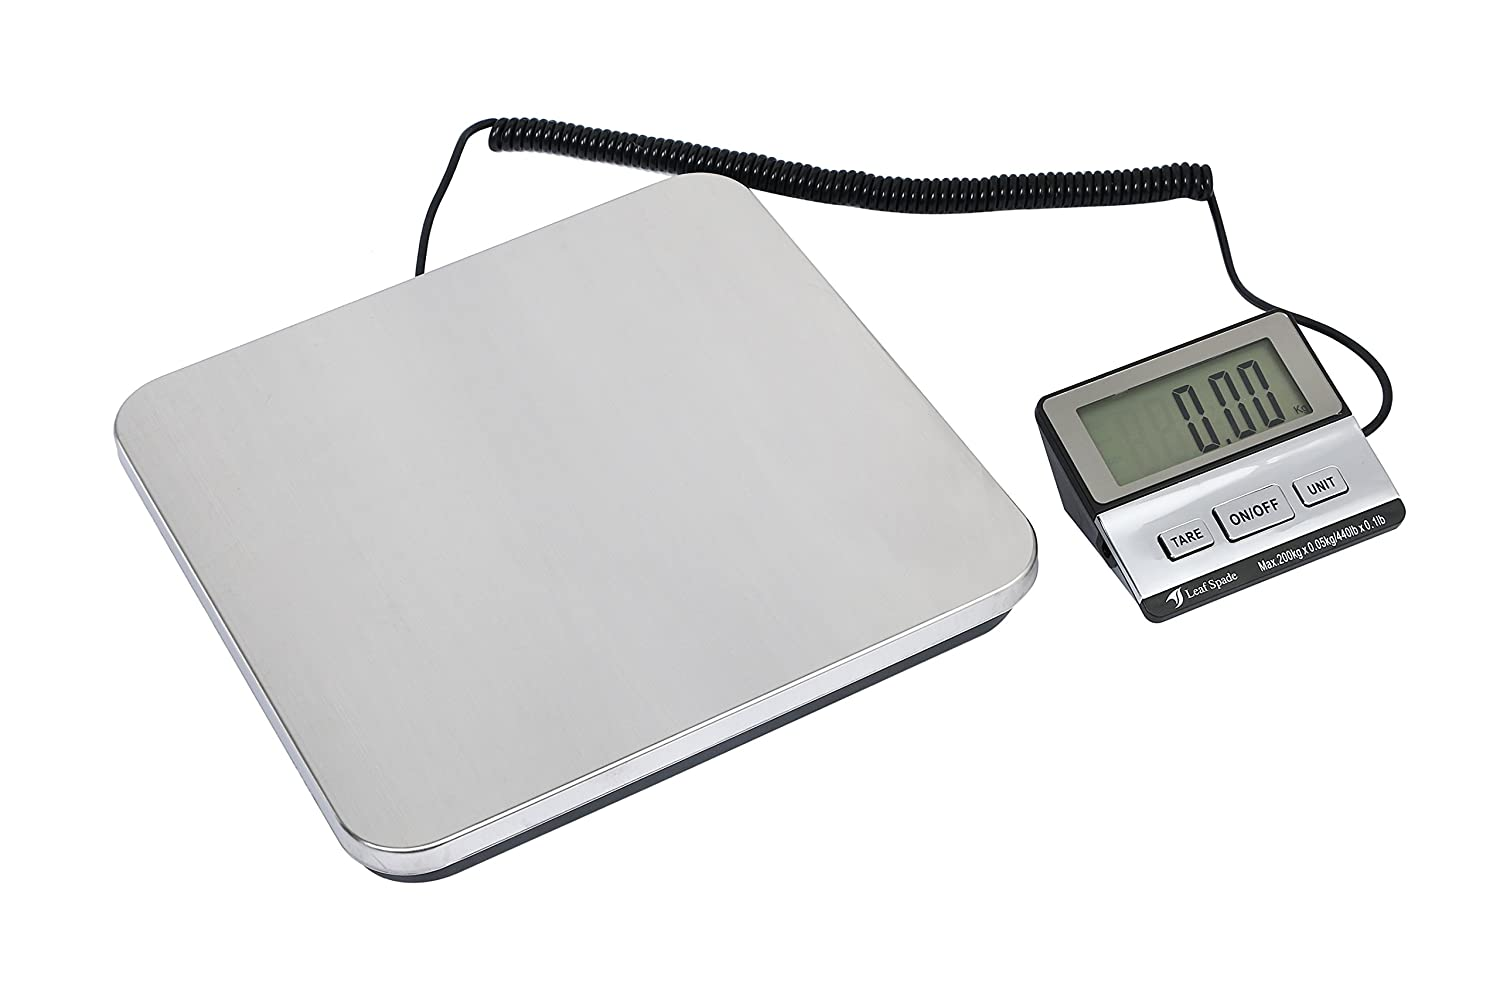 Leaf spade 440 lbs Digital Shipping Postal Scale with Durable Stainless Steel (440lb) LS-200